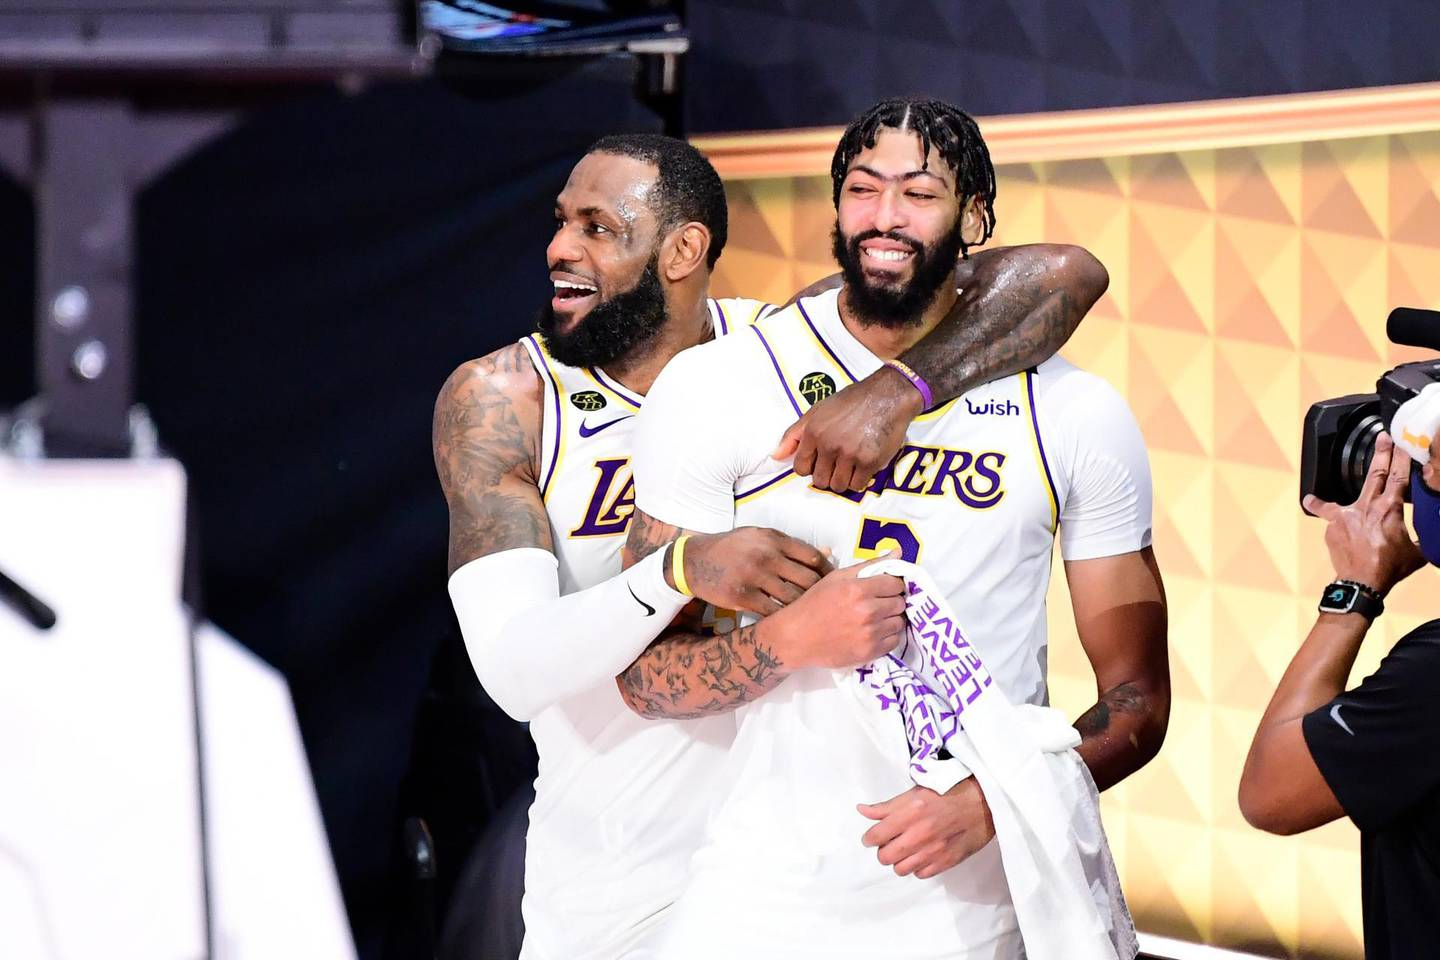 LAKE BUENA VISTA, FLORIDA - OCTOBER 11: LeBron James #23 of the Los Angeles Lakers and Anthony Davis #3 of the Los Angeles Lakers react after winning the 2020 NBA Championship in Game Six of the 2020 NBA Finals at AdventHealth Arena at the ESPN Wide World Of Sports Complex on October 11, 2020 in Lake Buena Vista, Florida. NOTE TO USER: User expressly acknowledges and agrees that, by downloading and or using this photograph, User is consenting to the terms and conditions of the Getty Images License Agreement.   Douglas P. DeFelice/Getty Images/AFP